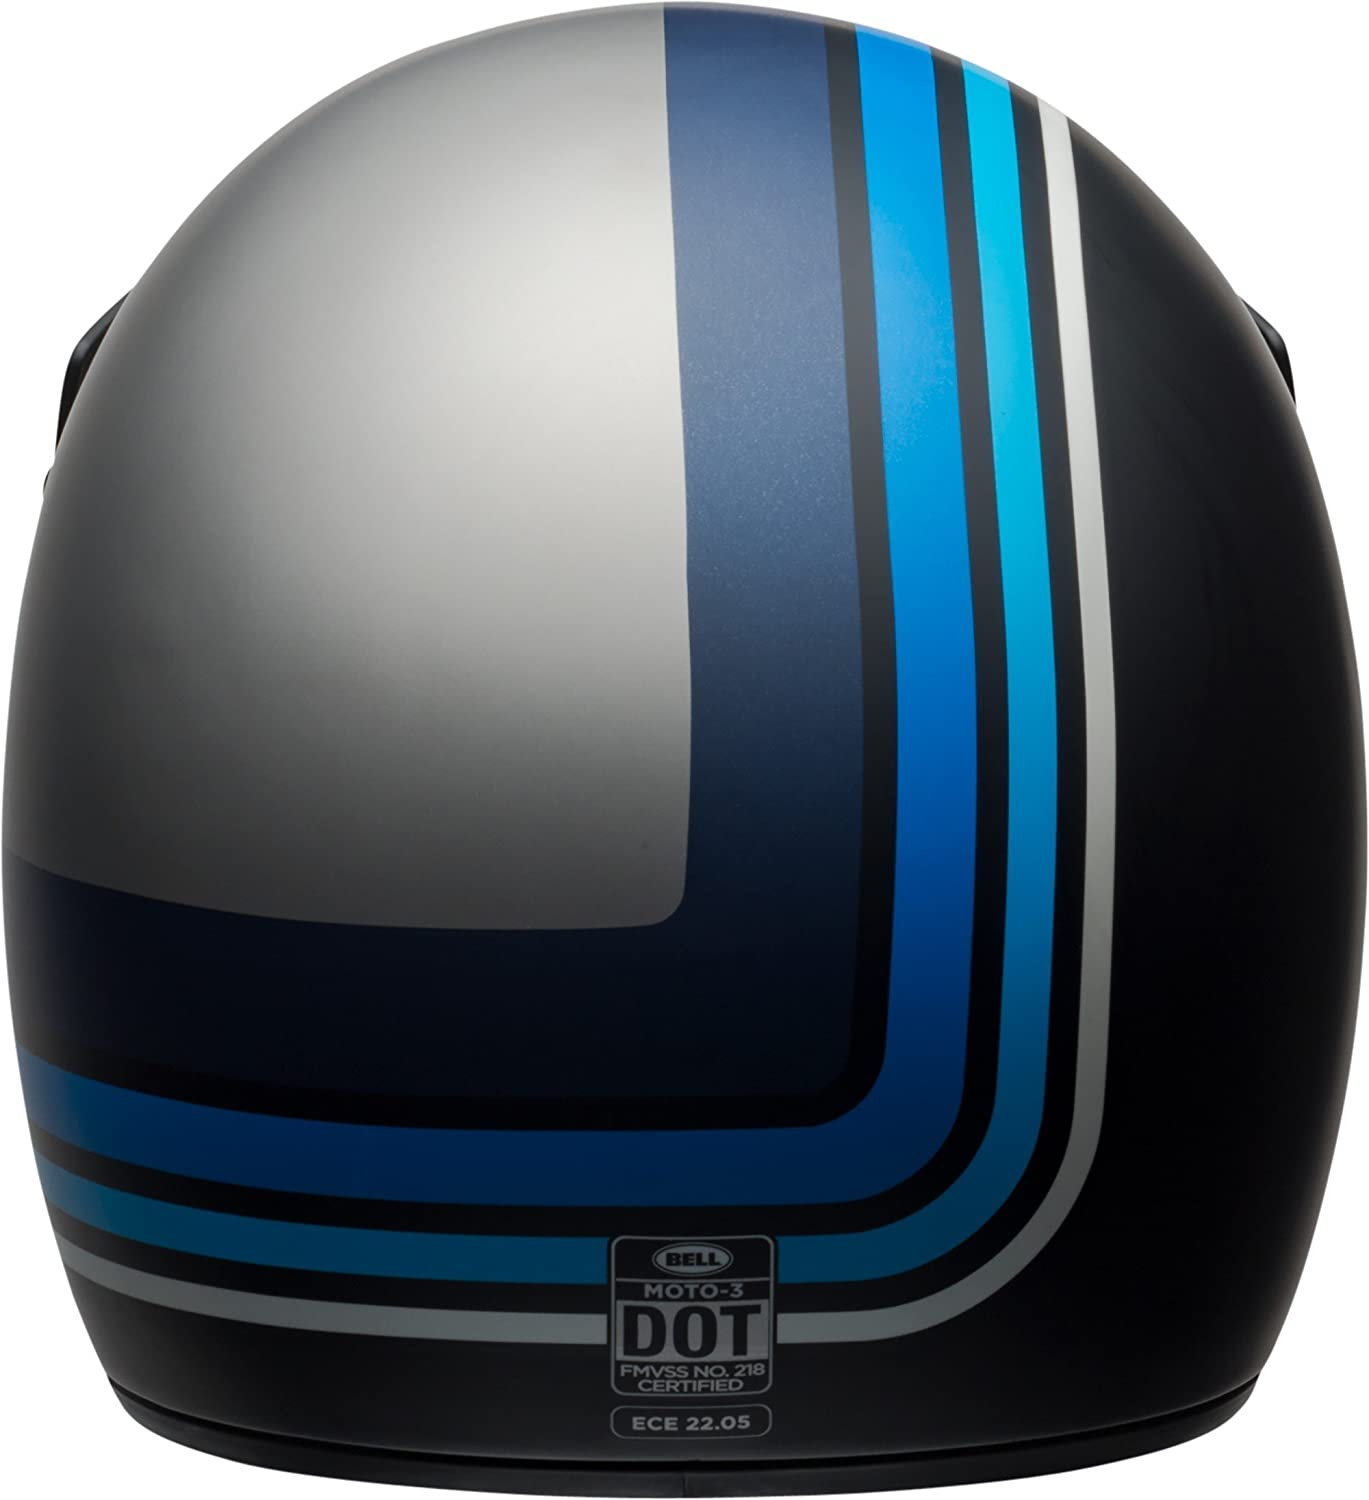 Amazon.com: Bell Moto-3 Off-Road Motorcycle Helmet (Matte Silver/Black/Blue Stripes, Small): Automotive